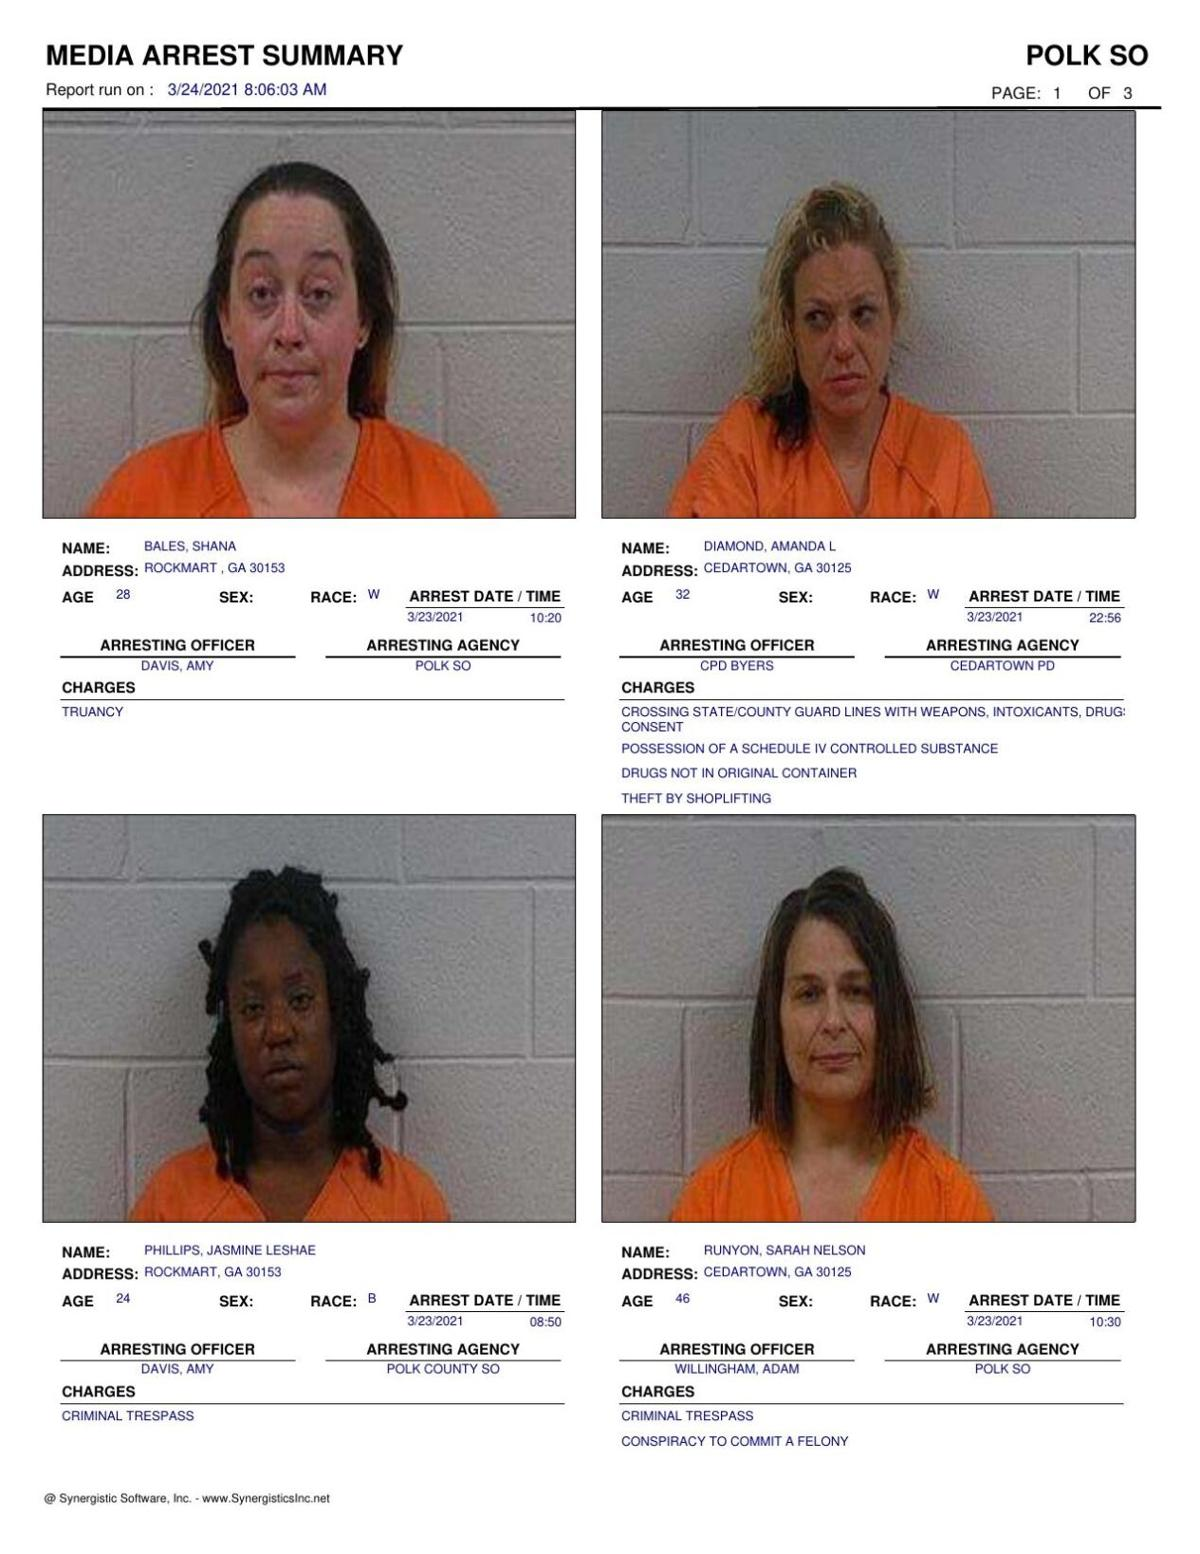 Polk County Jail Report for Wednesday, March 24